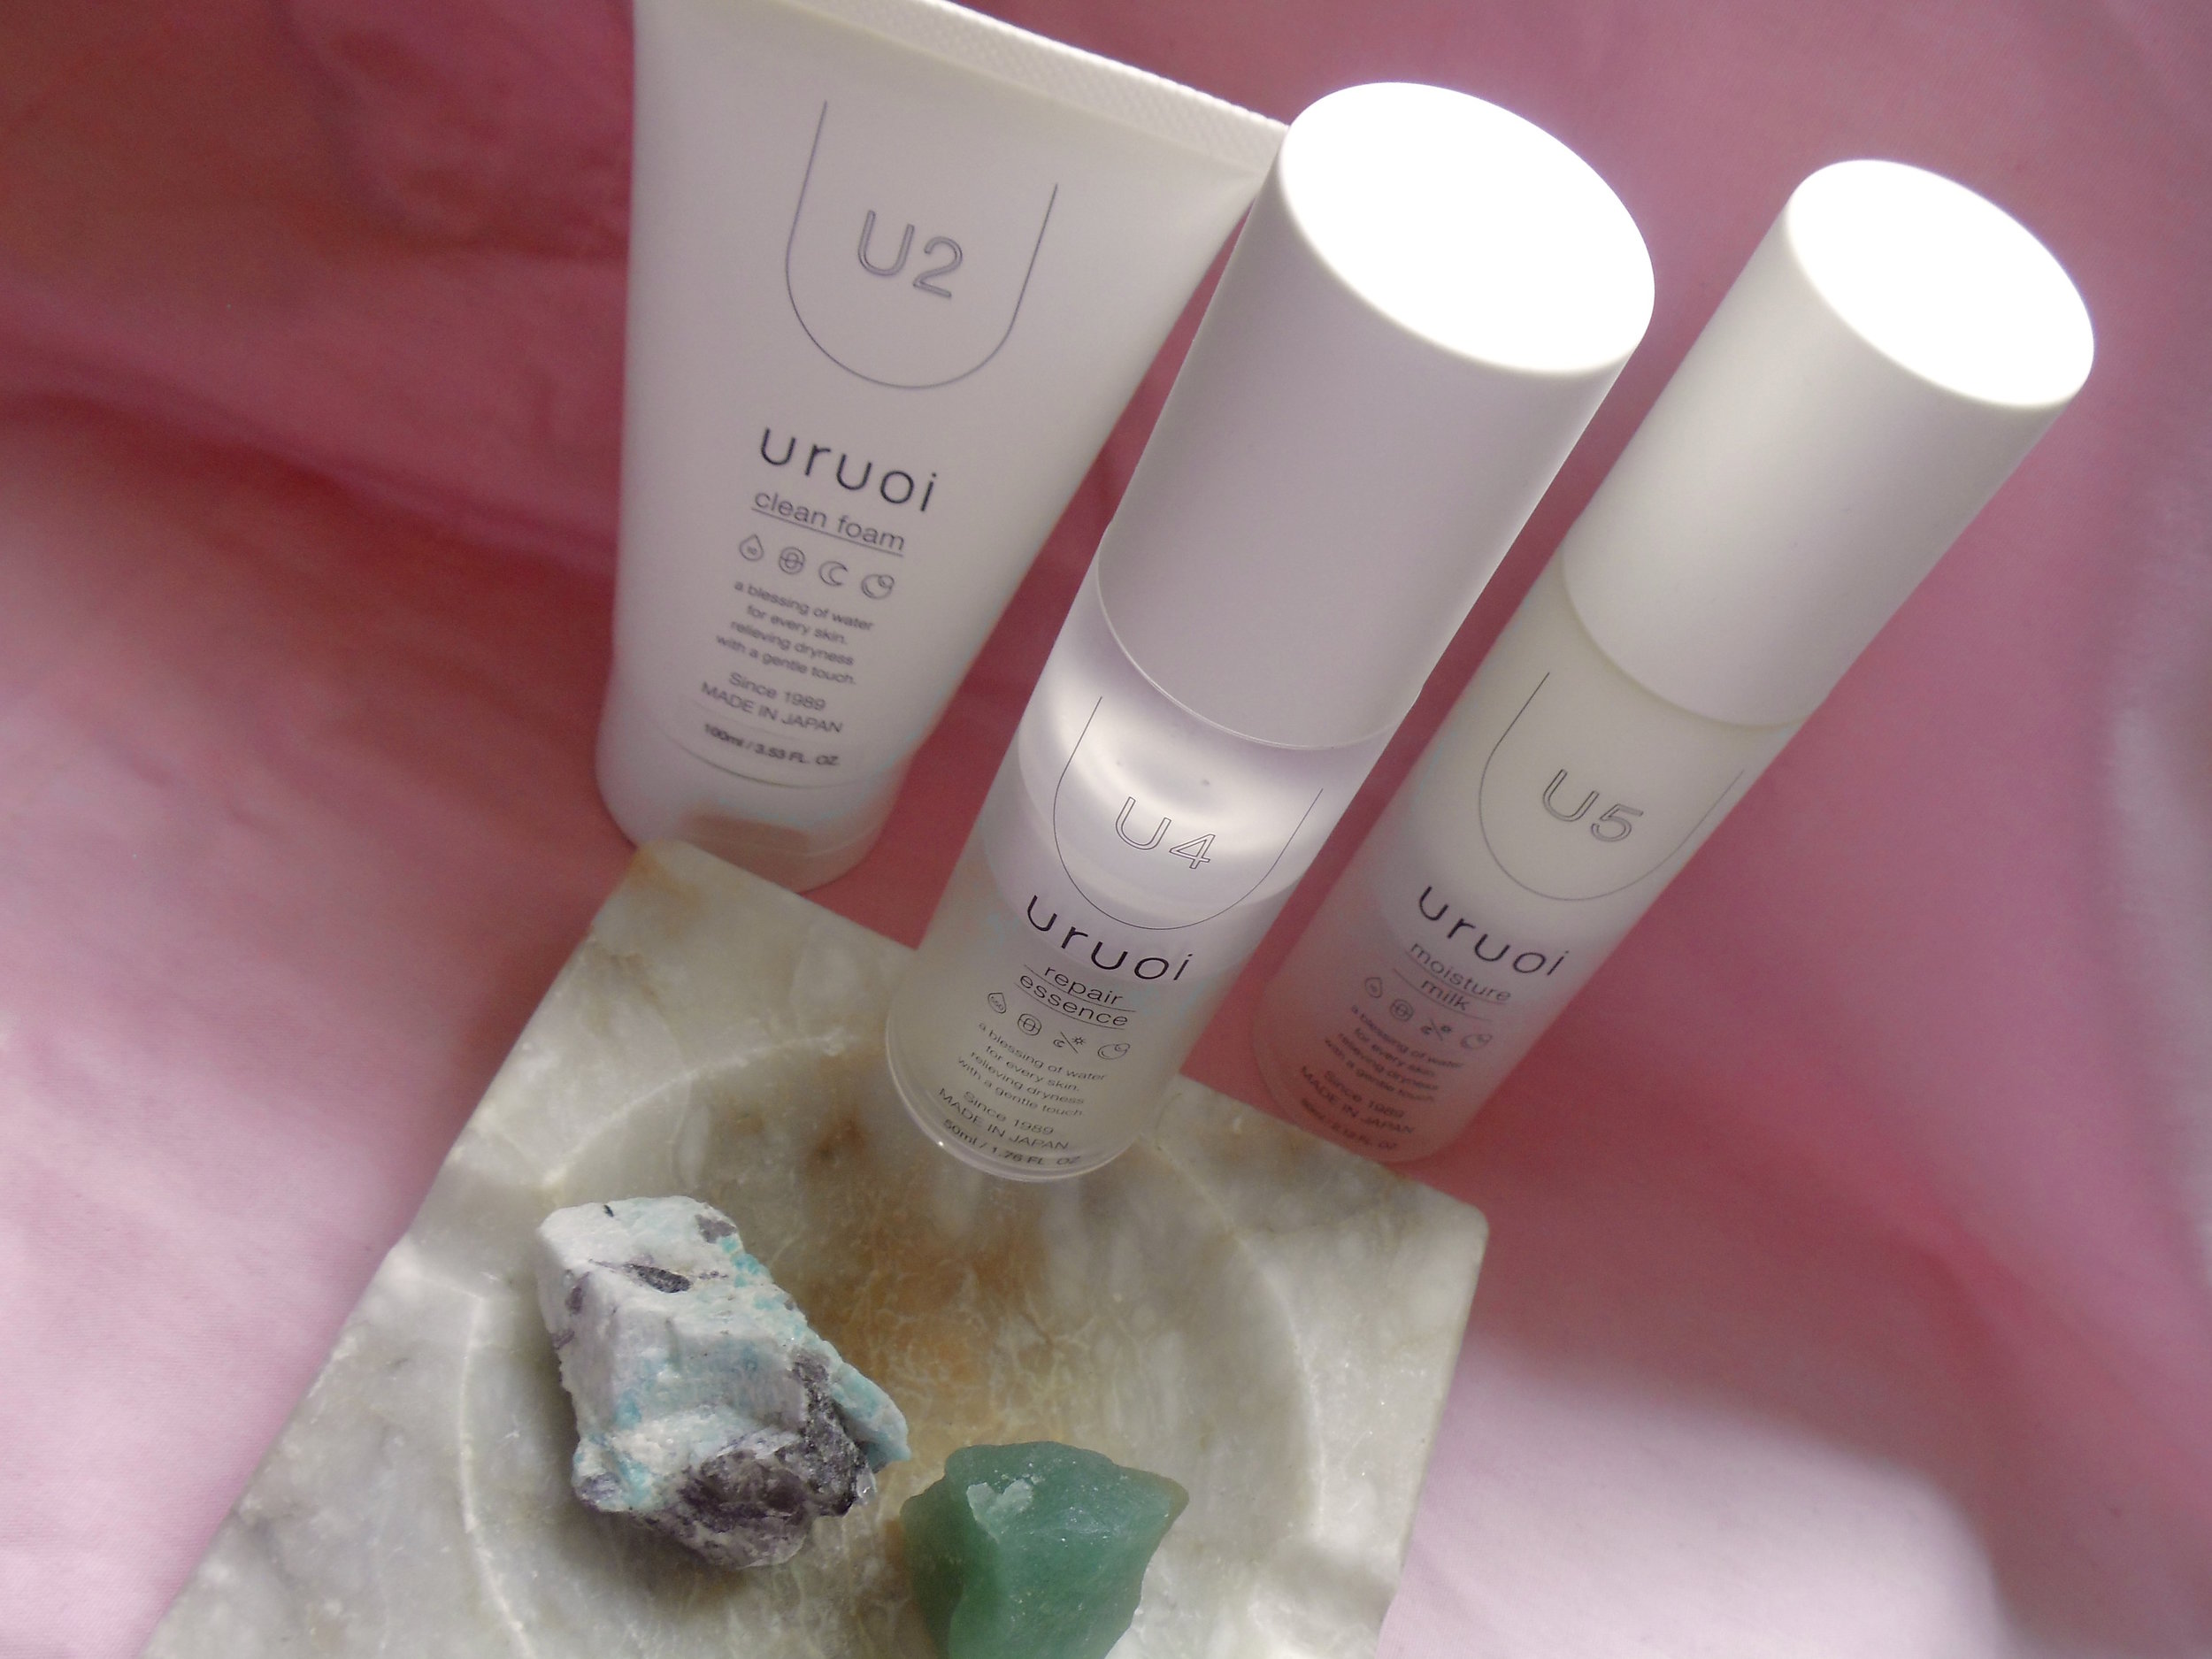 Review of Uruoi Skincare via DNAMAG